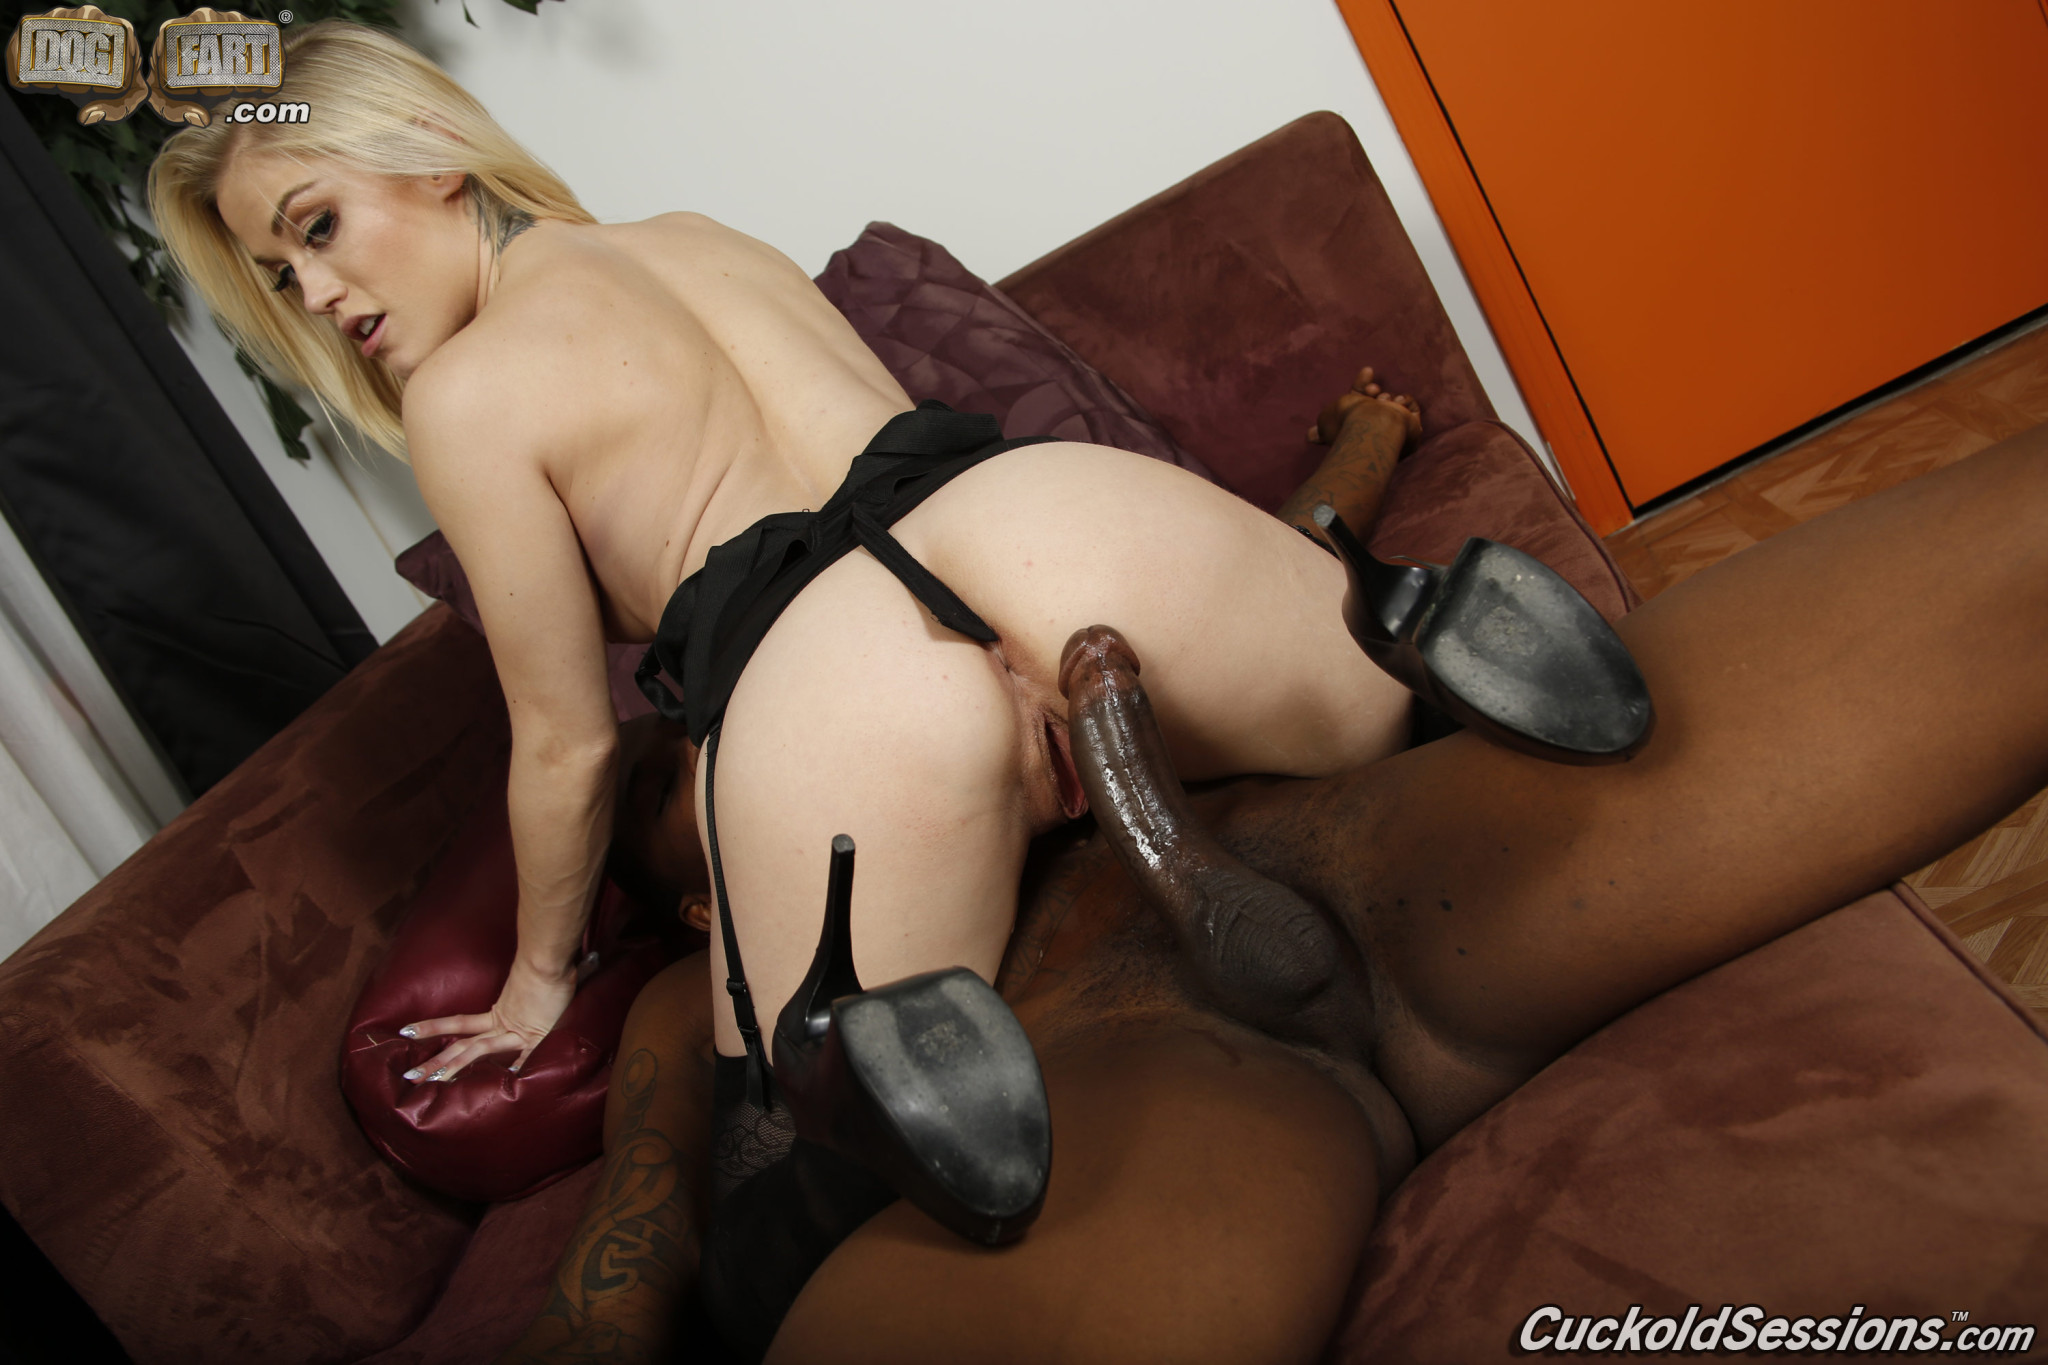 Ash hollywood makes love swarthy stallion during the time that her hubby watches